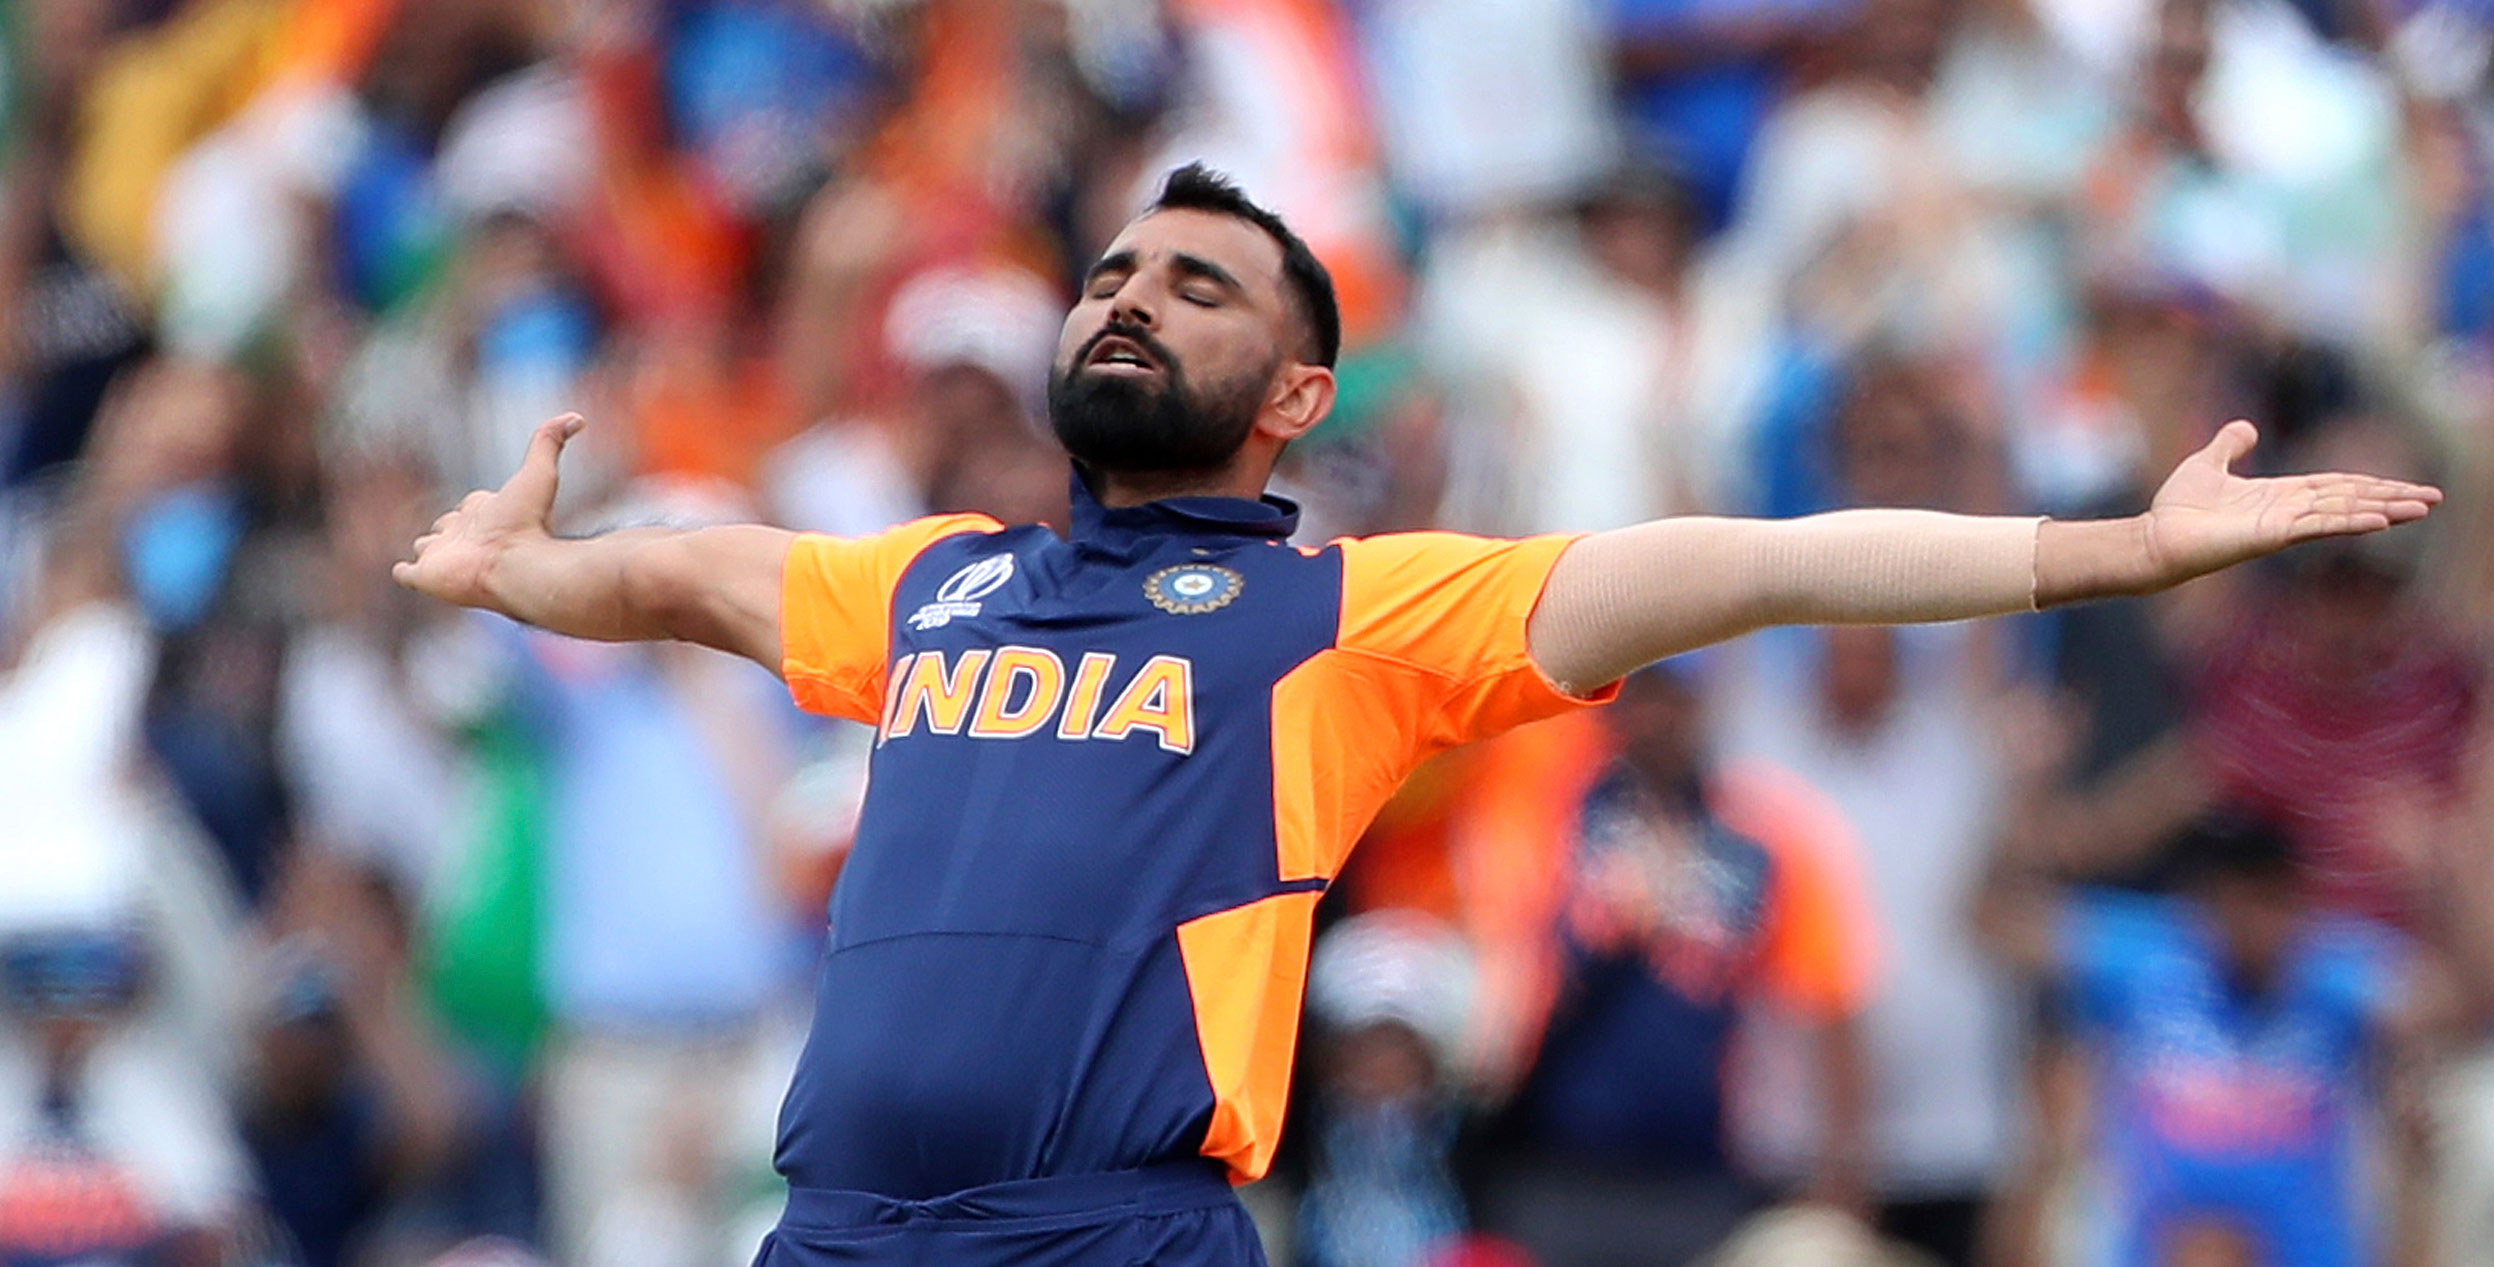 Mohammed Shami celebrates the dismissal of England's captain Eoin Morgan during the ICC Cricket World Cup match between England and India at Edgbaston in Birmingham, England, on June 30, 2019.